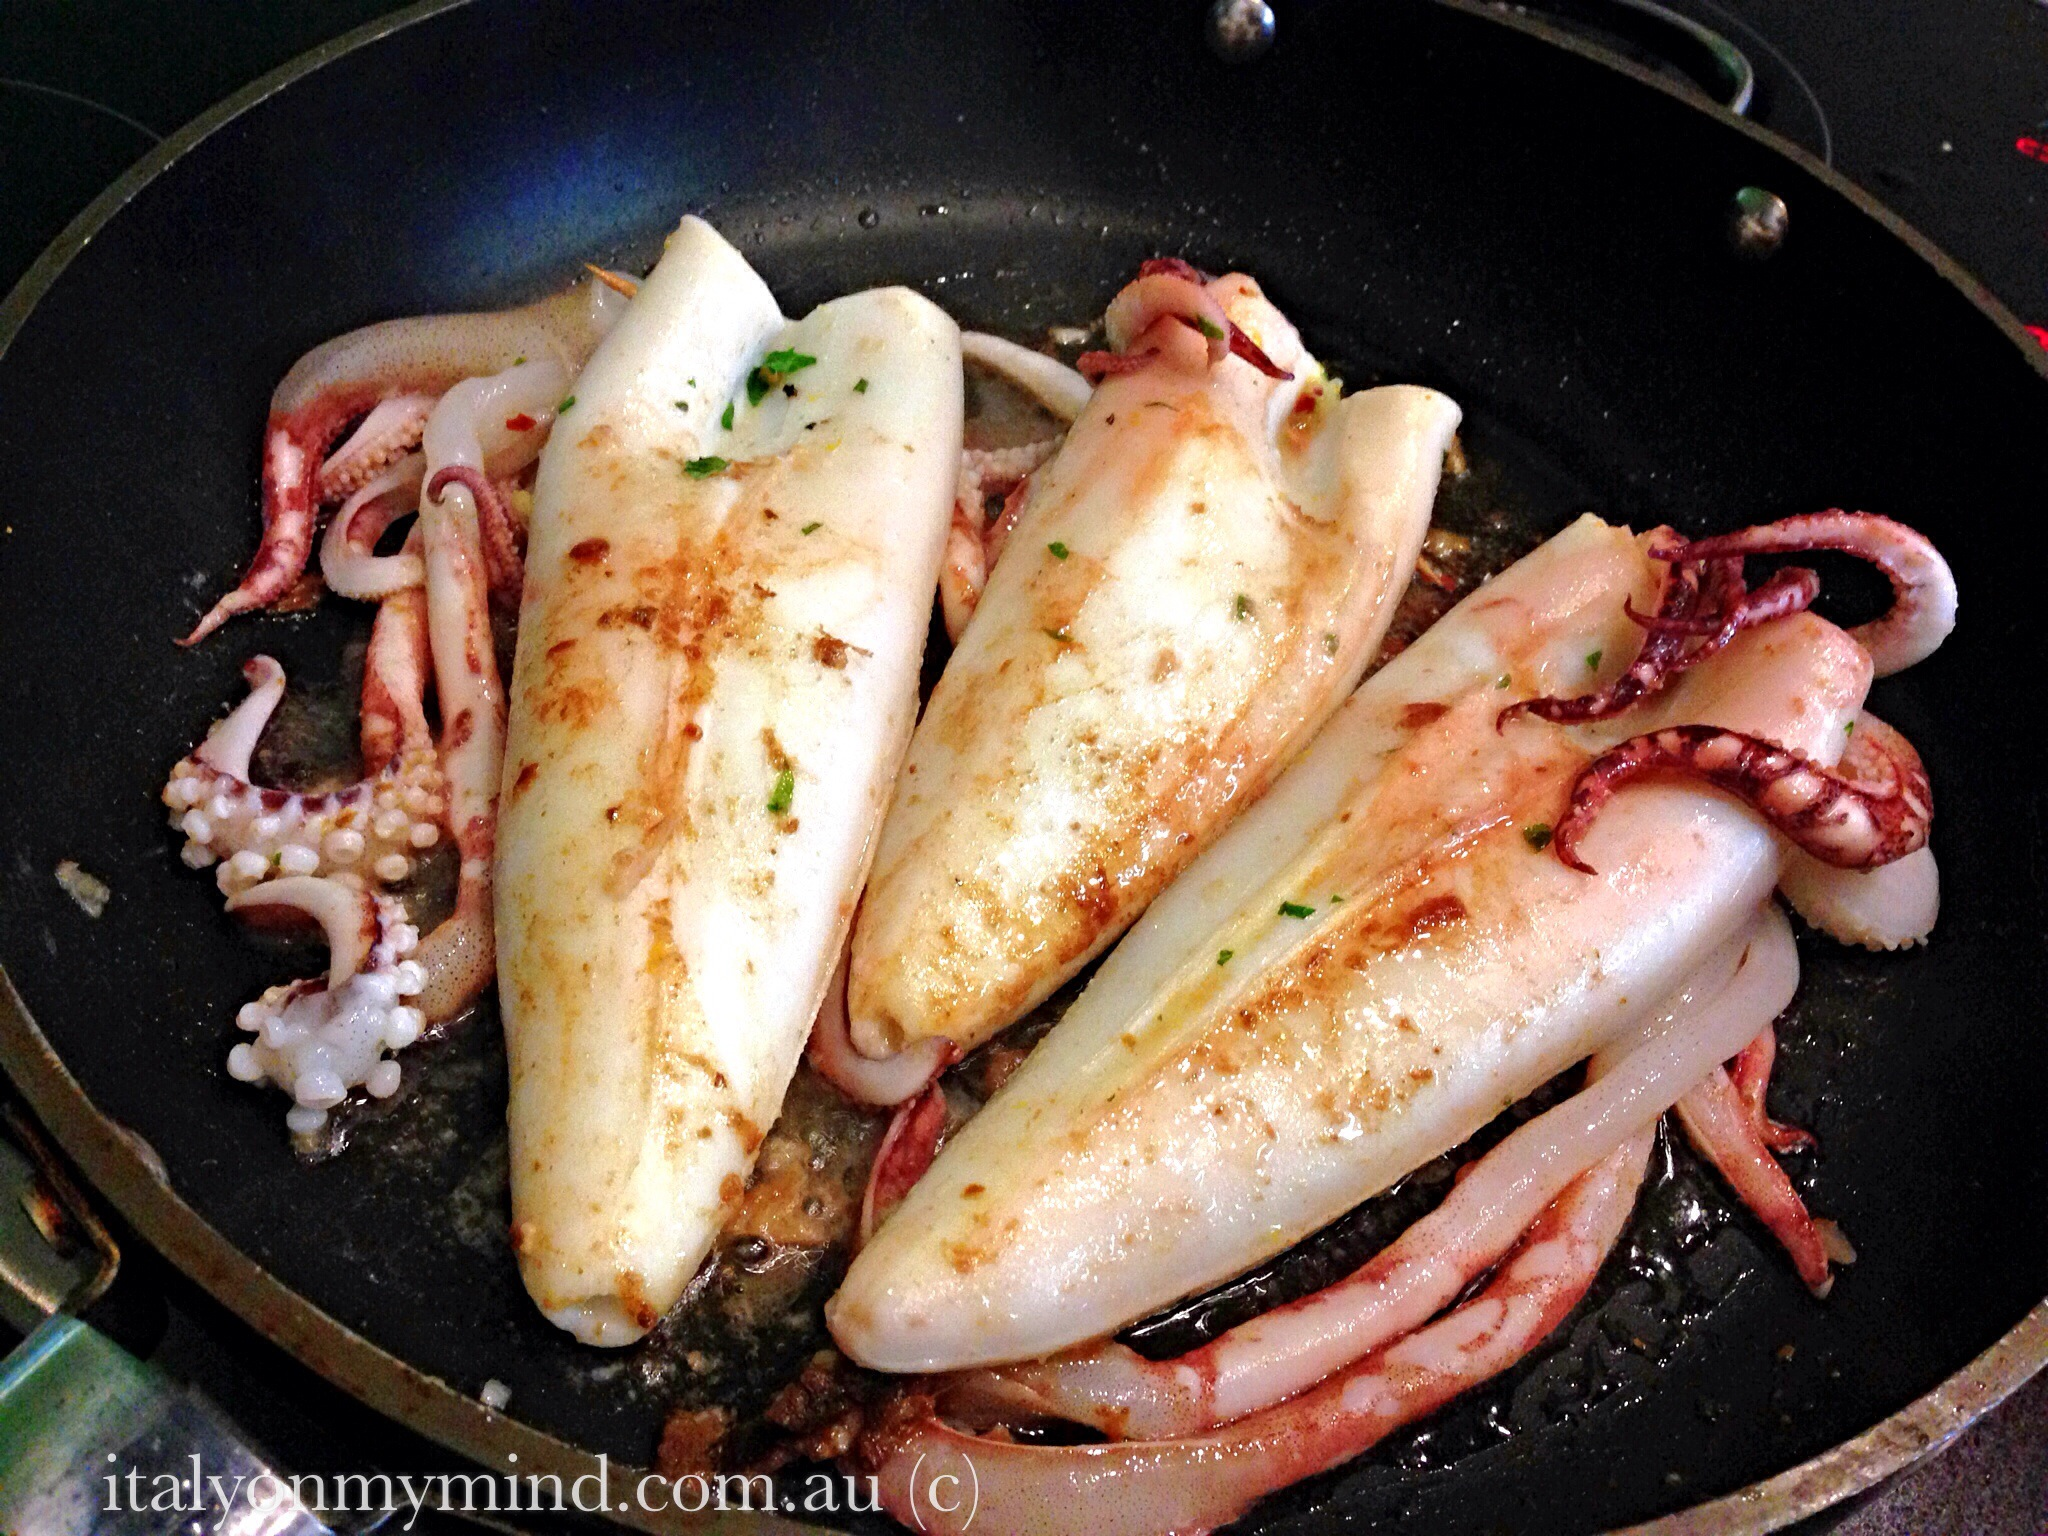 Stuffed squid with pancetta and fennel (calamari farciti)